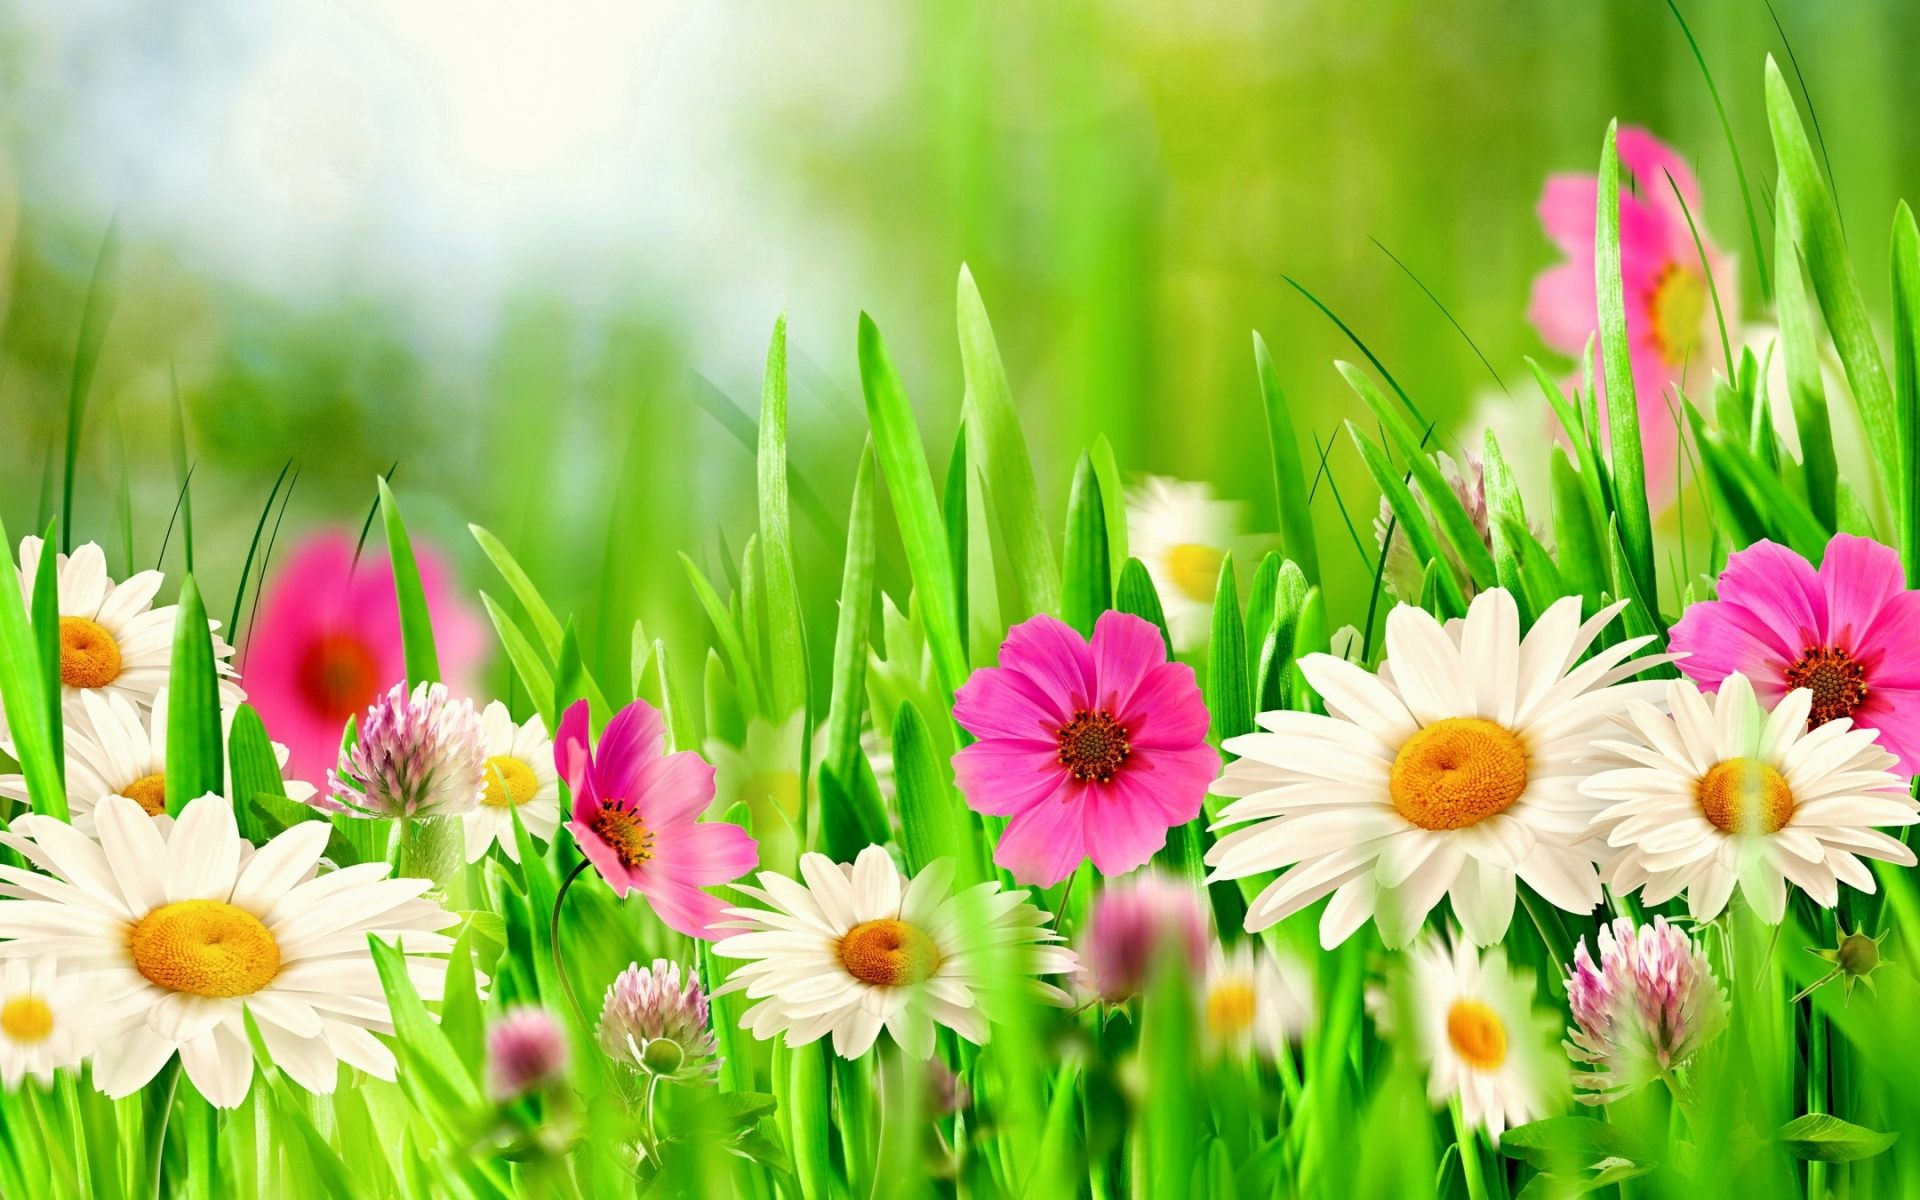 Spring Flowers Wallpaper 38 Spring Flowers HD Wallpapers 1920x1200